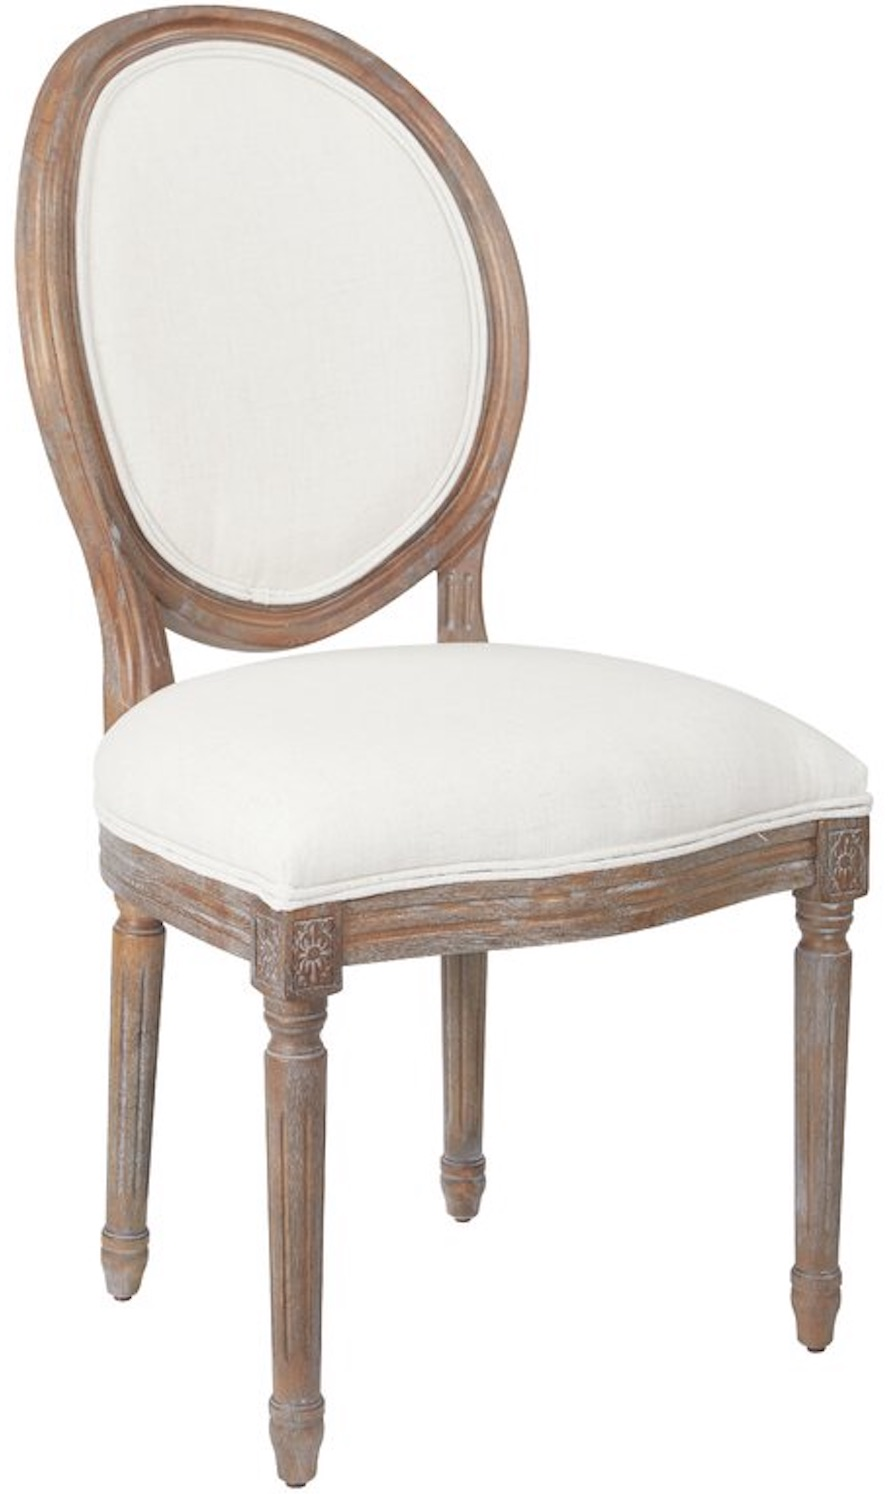 Dining Chairs for Family Gatherings Haleigh Oval Back Upholstered Dining Chair #Farmhouse #Chairs #FarmhouseChairs #RusticDecor #CountryDecor #FarmhouseDecor #VintageInspired #DiningChairs #FamilyDinners #FamilyMeals #FamilyTime